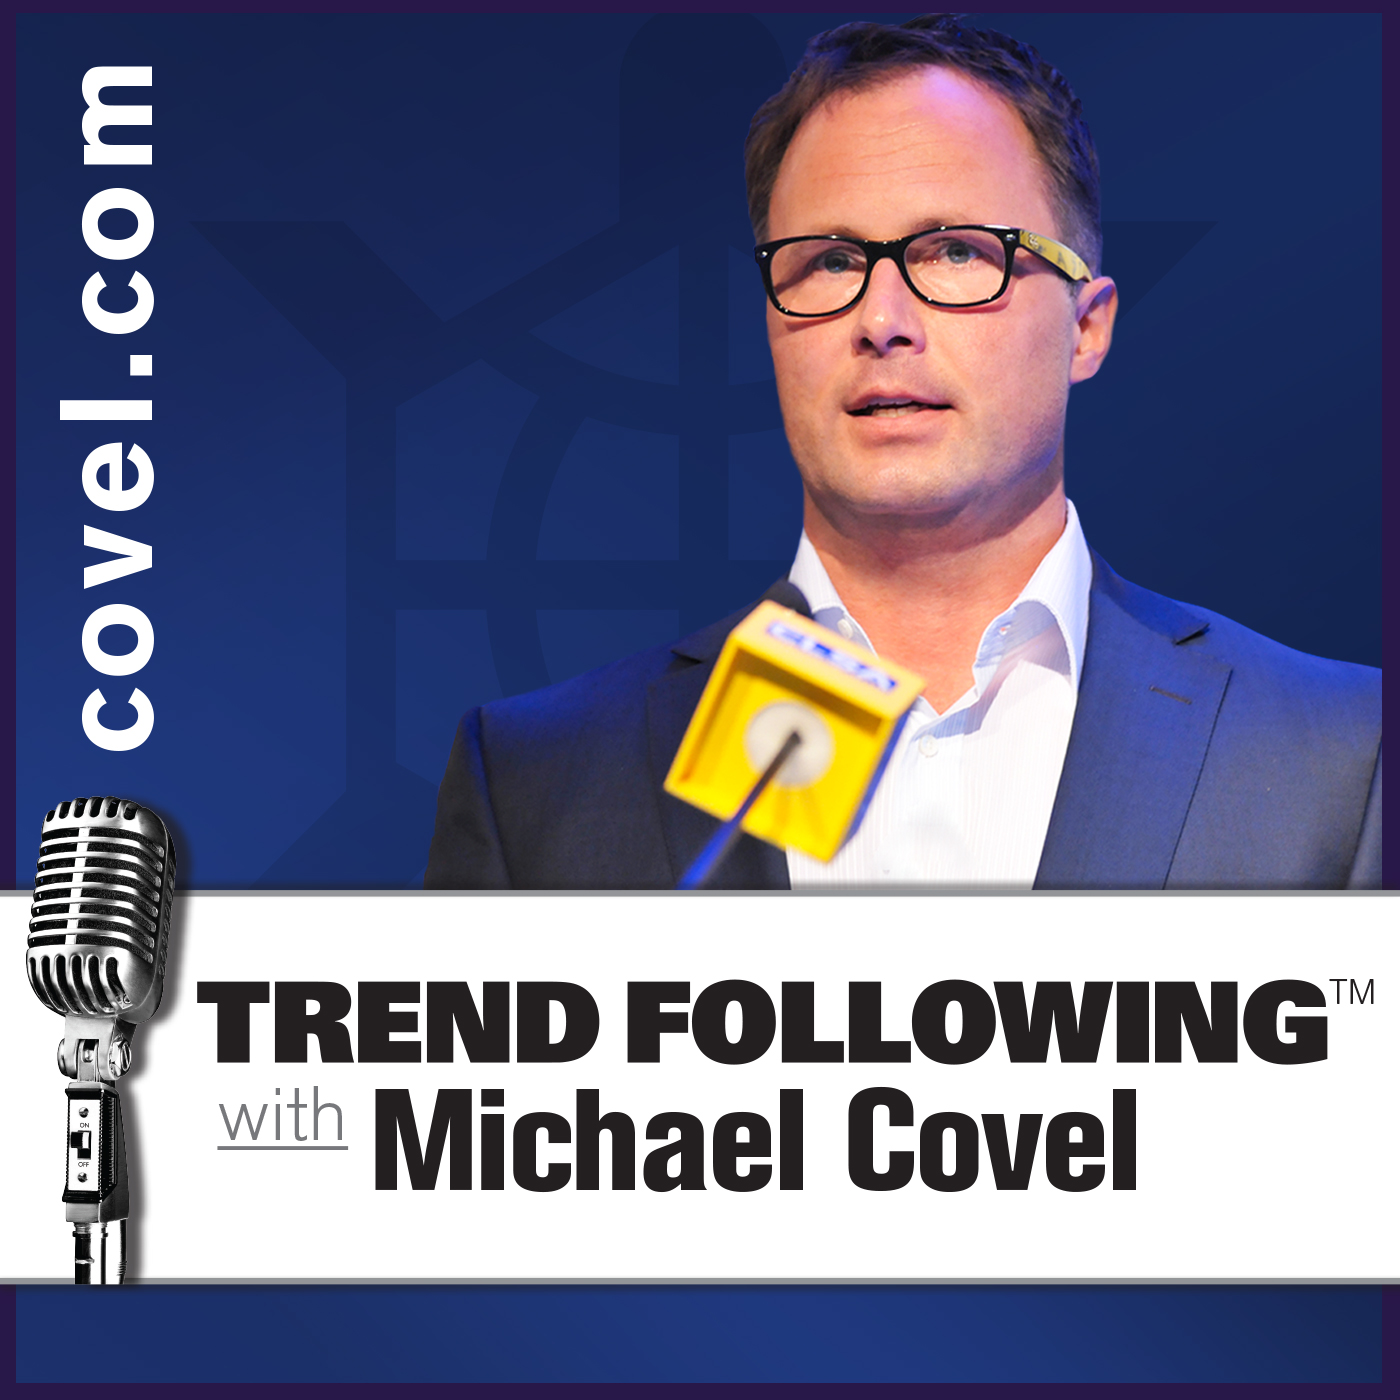 Ep. 529: Annie Duke Interview #2 with Michael Covel on Trend Following Radio